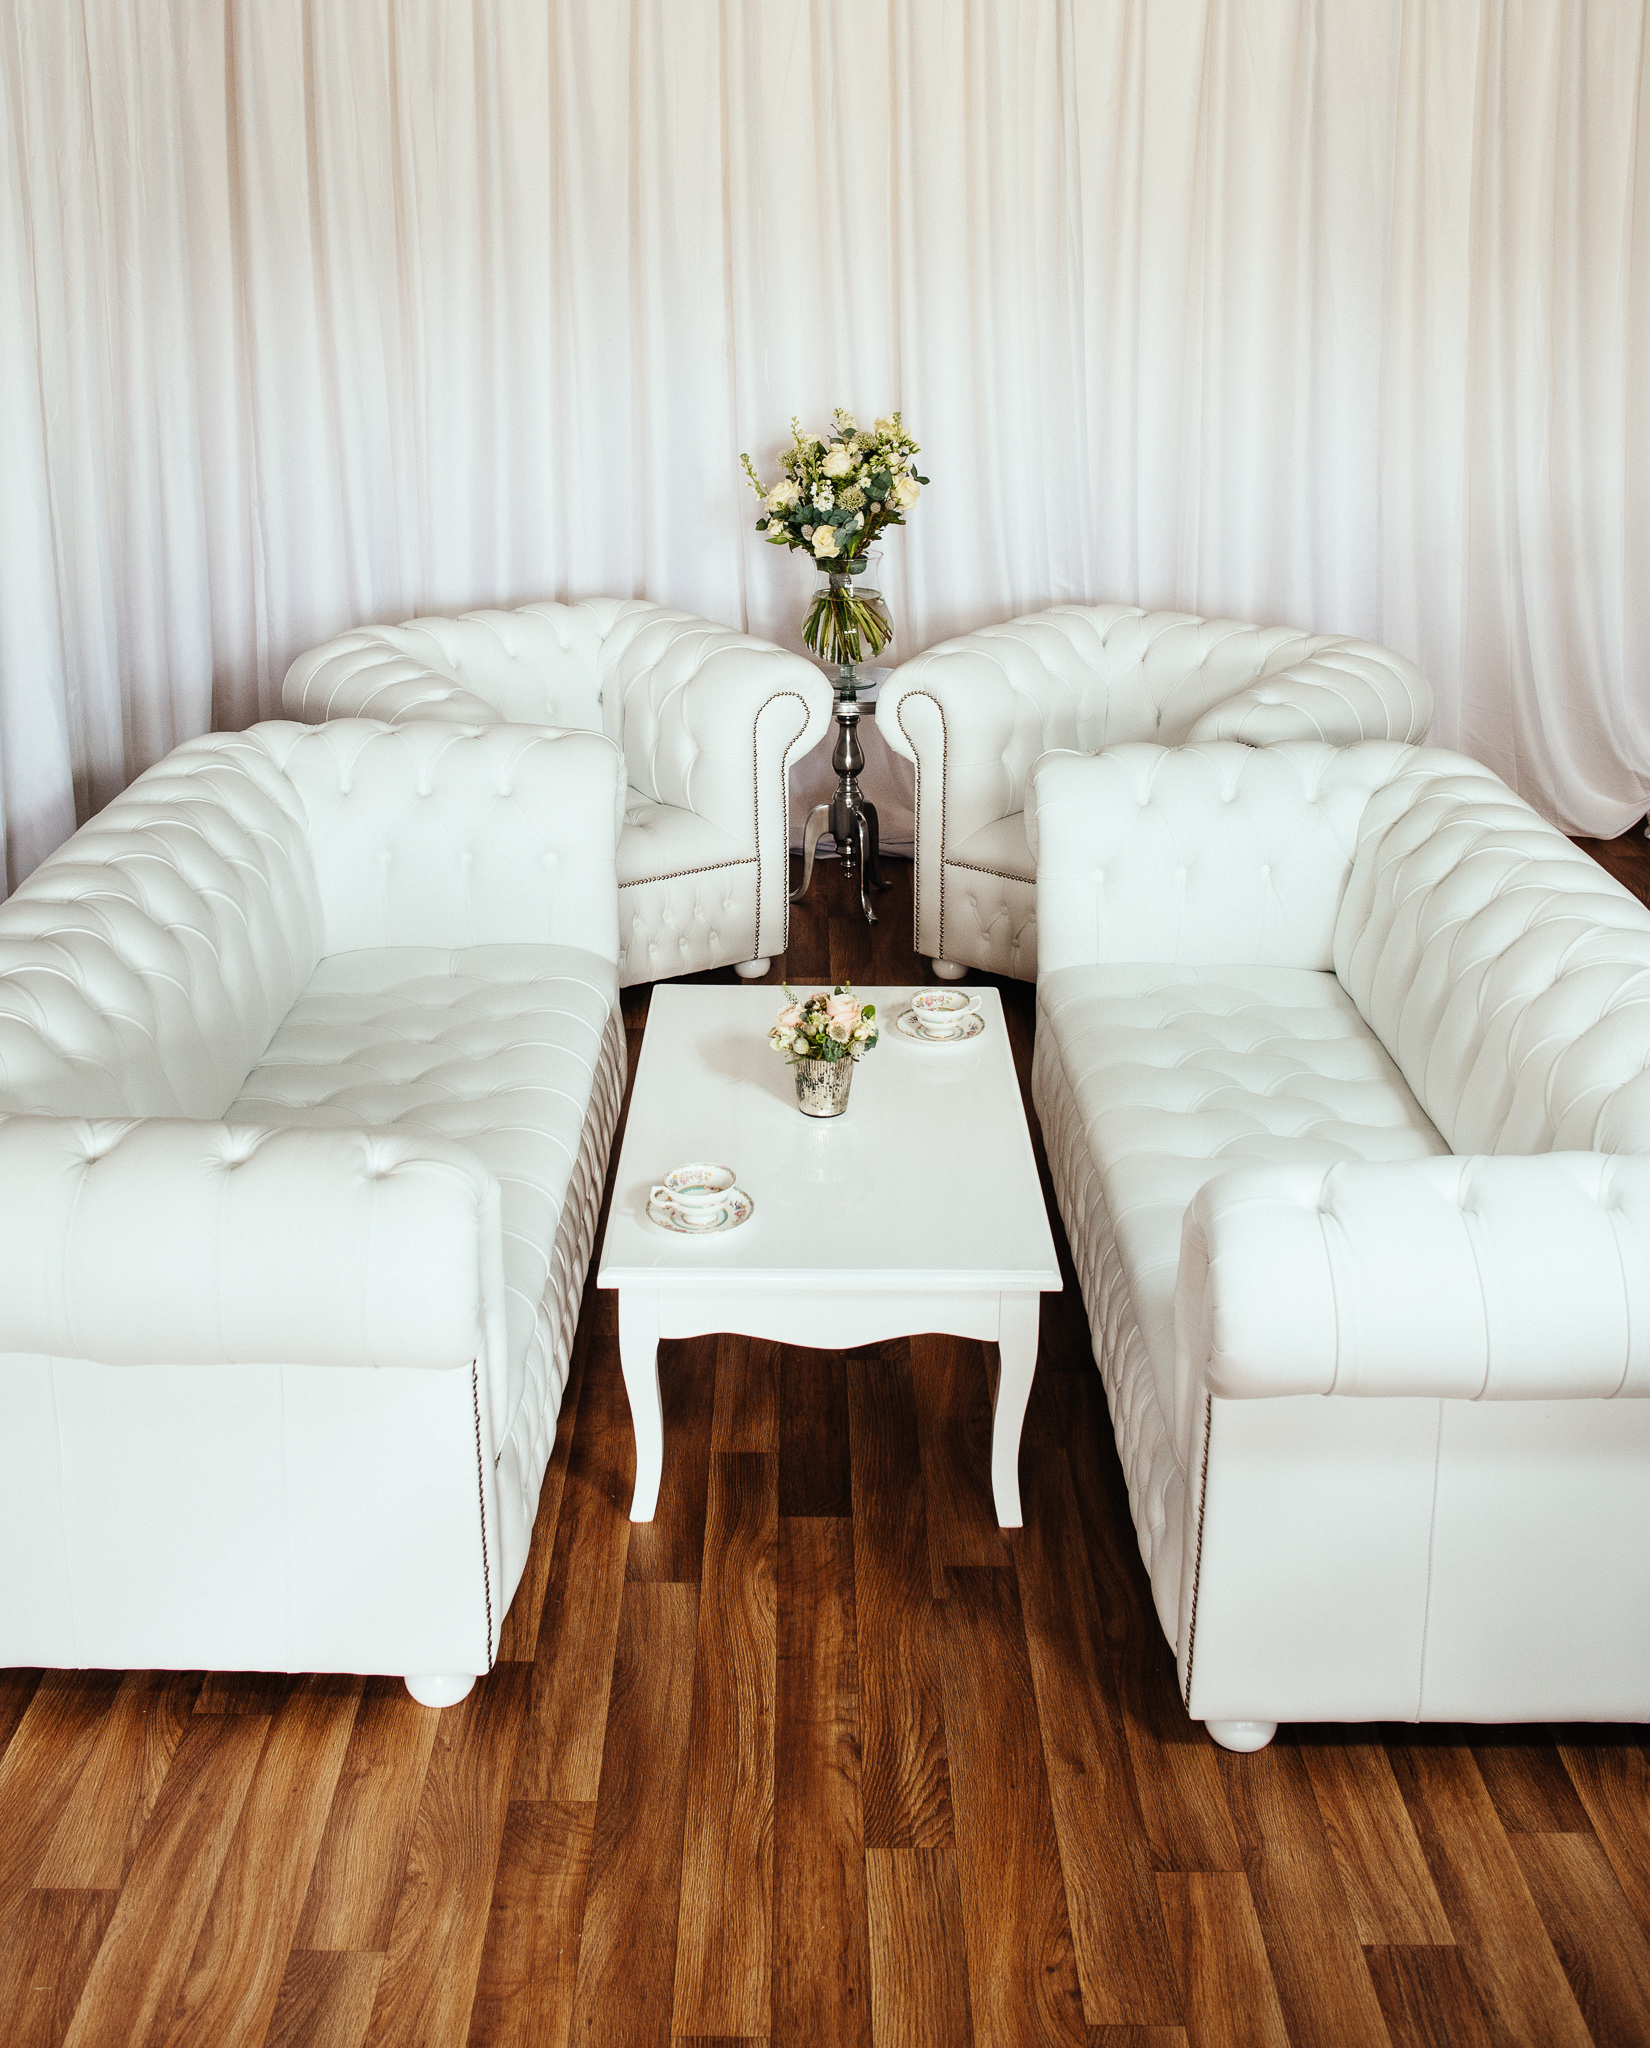 wedding chair cover hire chesterfield cosco baby luxury british made white leather sofa set